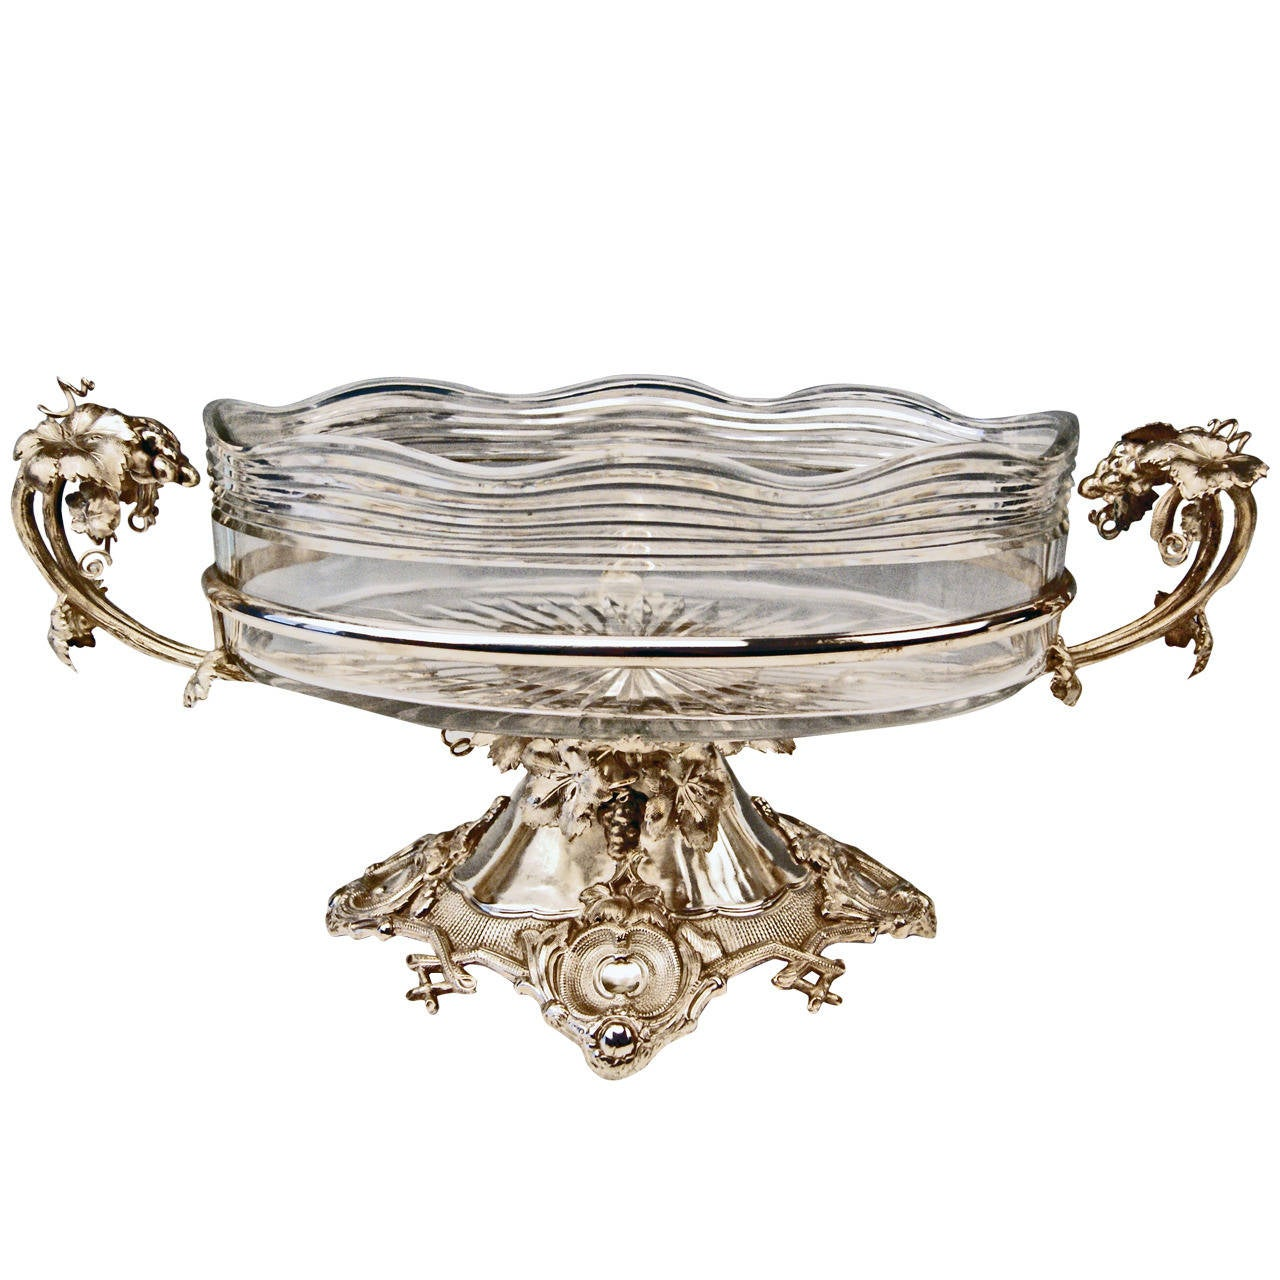 Huge German Silver Flower Bowl with Glass Liner by Nicolassen, circa 1870 1